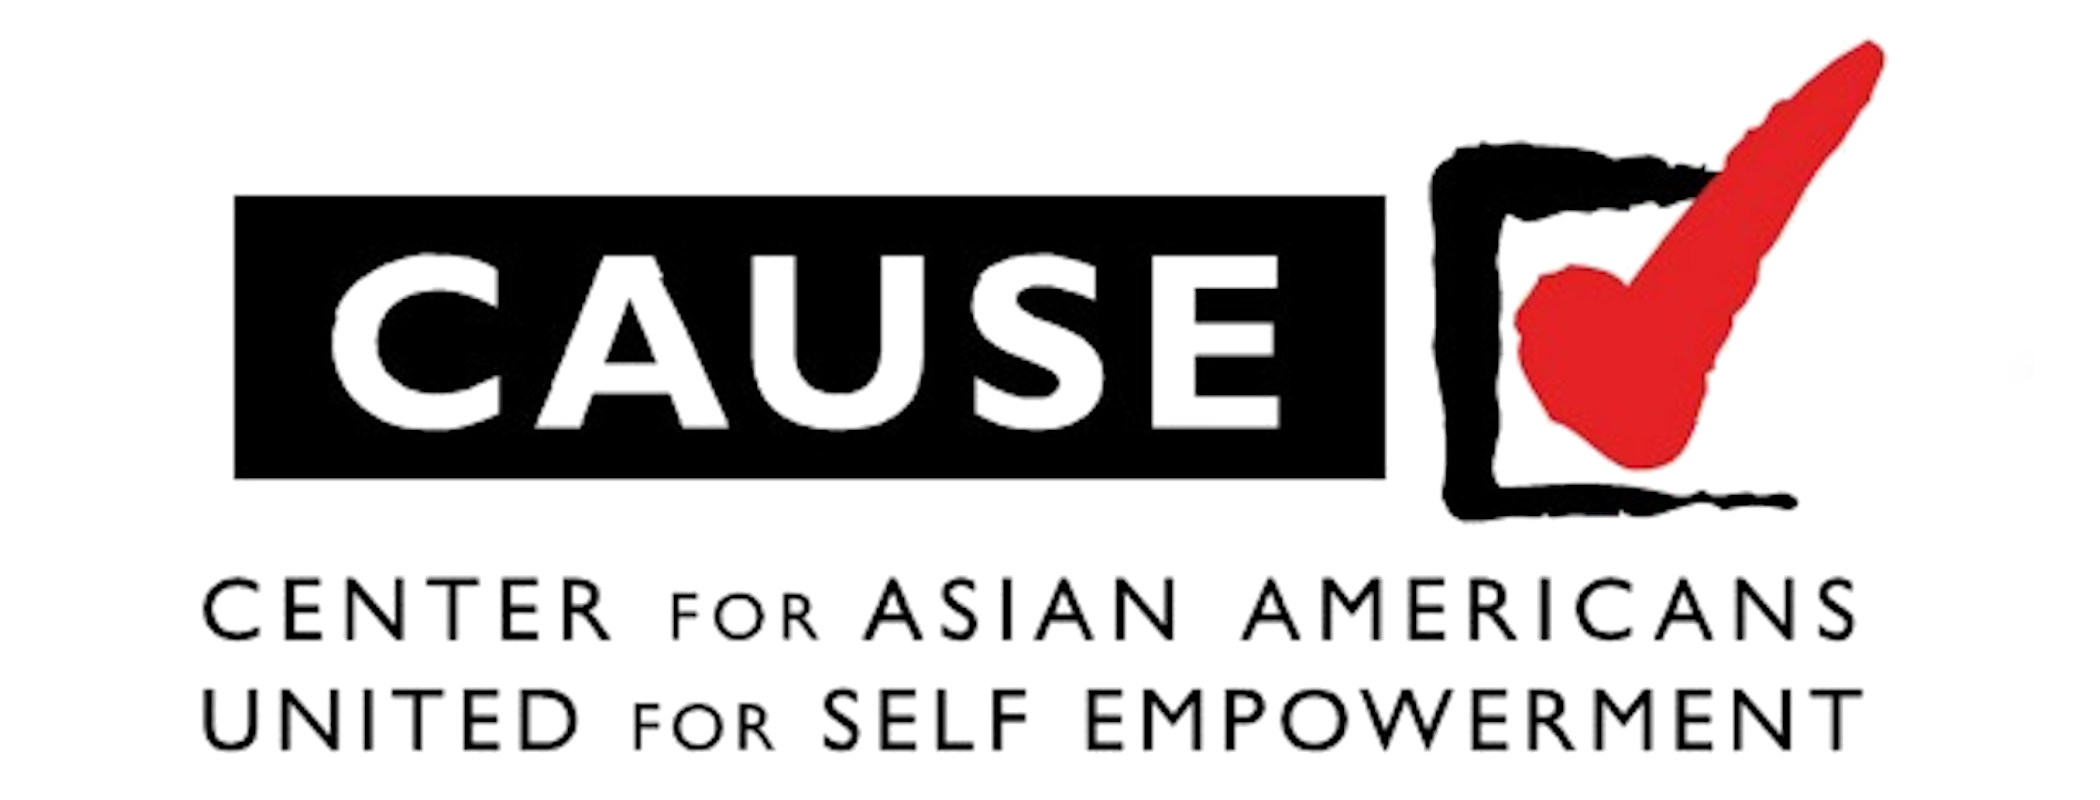 - Center for Asian AmericansUnited for Self Empowerment1605 W. Olympic, Ste 1027Los Angeles, CA 90015(213) 269-4639 | causeusa.org